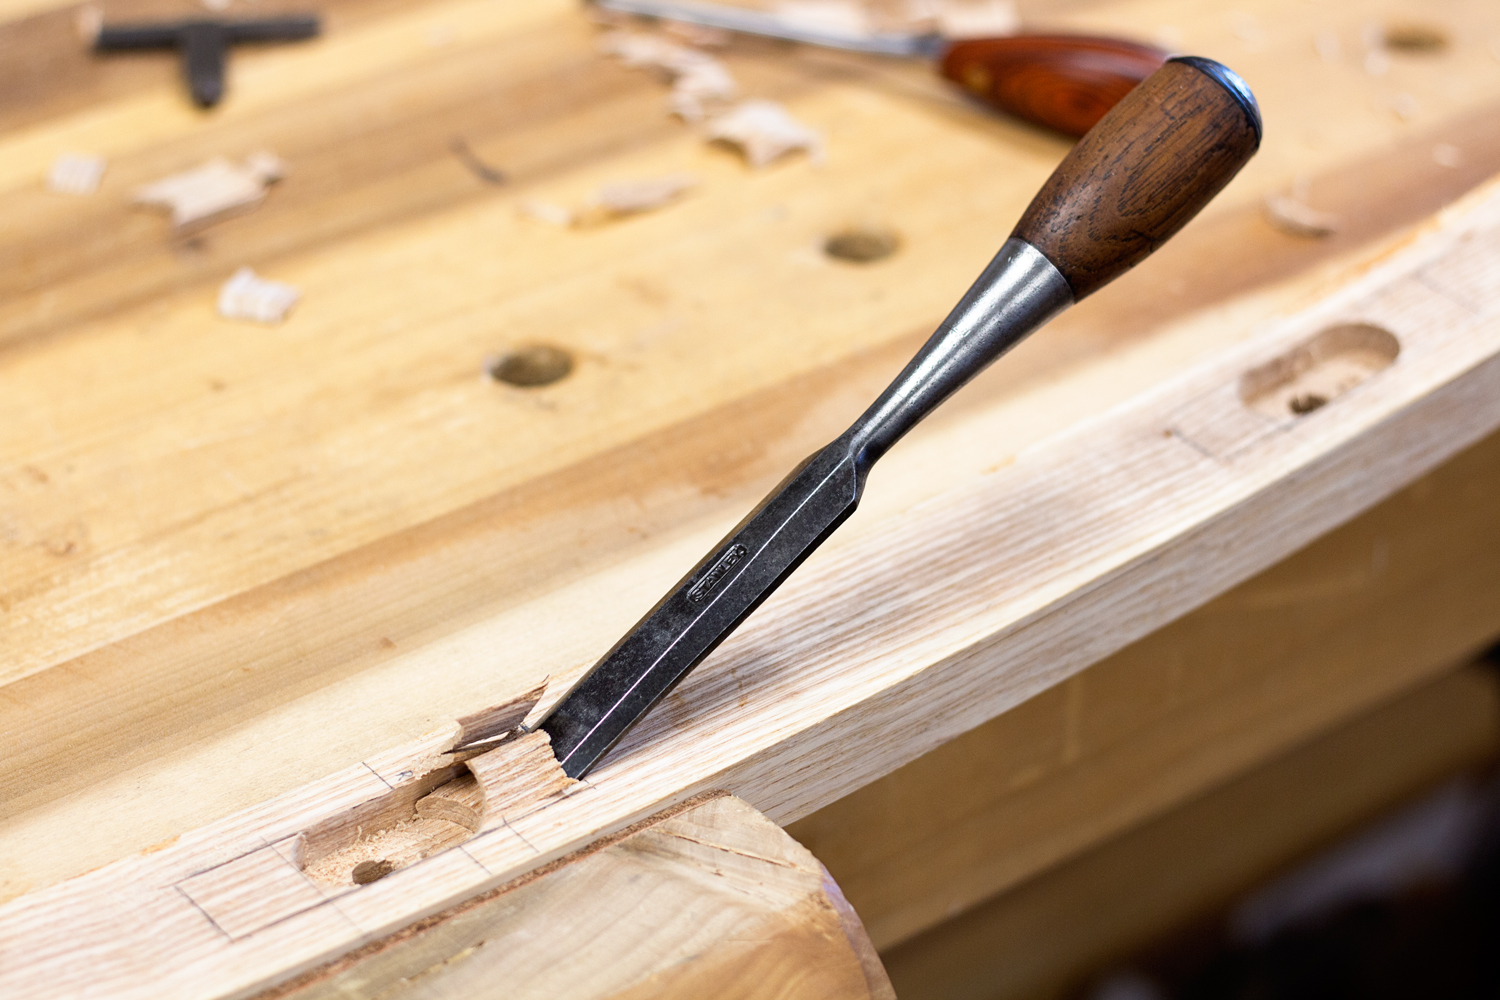 """Chopping out the waste with a 3/4"""" Stanley Everlasting chisel. I'll remove 90% of the bulk with the first few strikes of the mallet. The rest will be pared gently away by hand."""